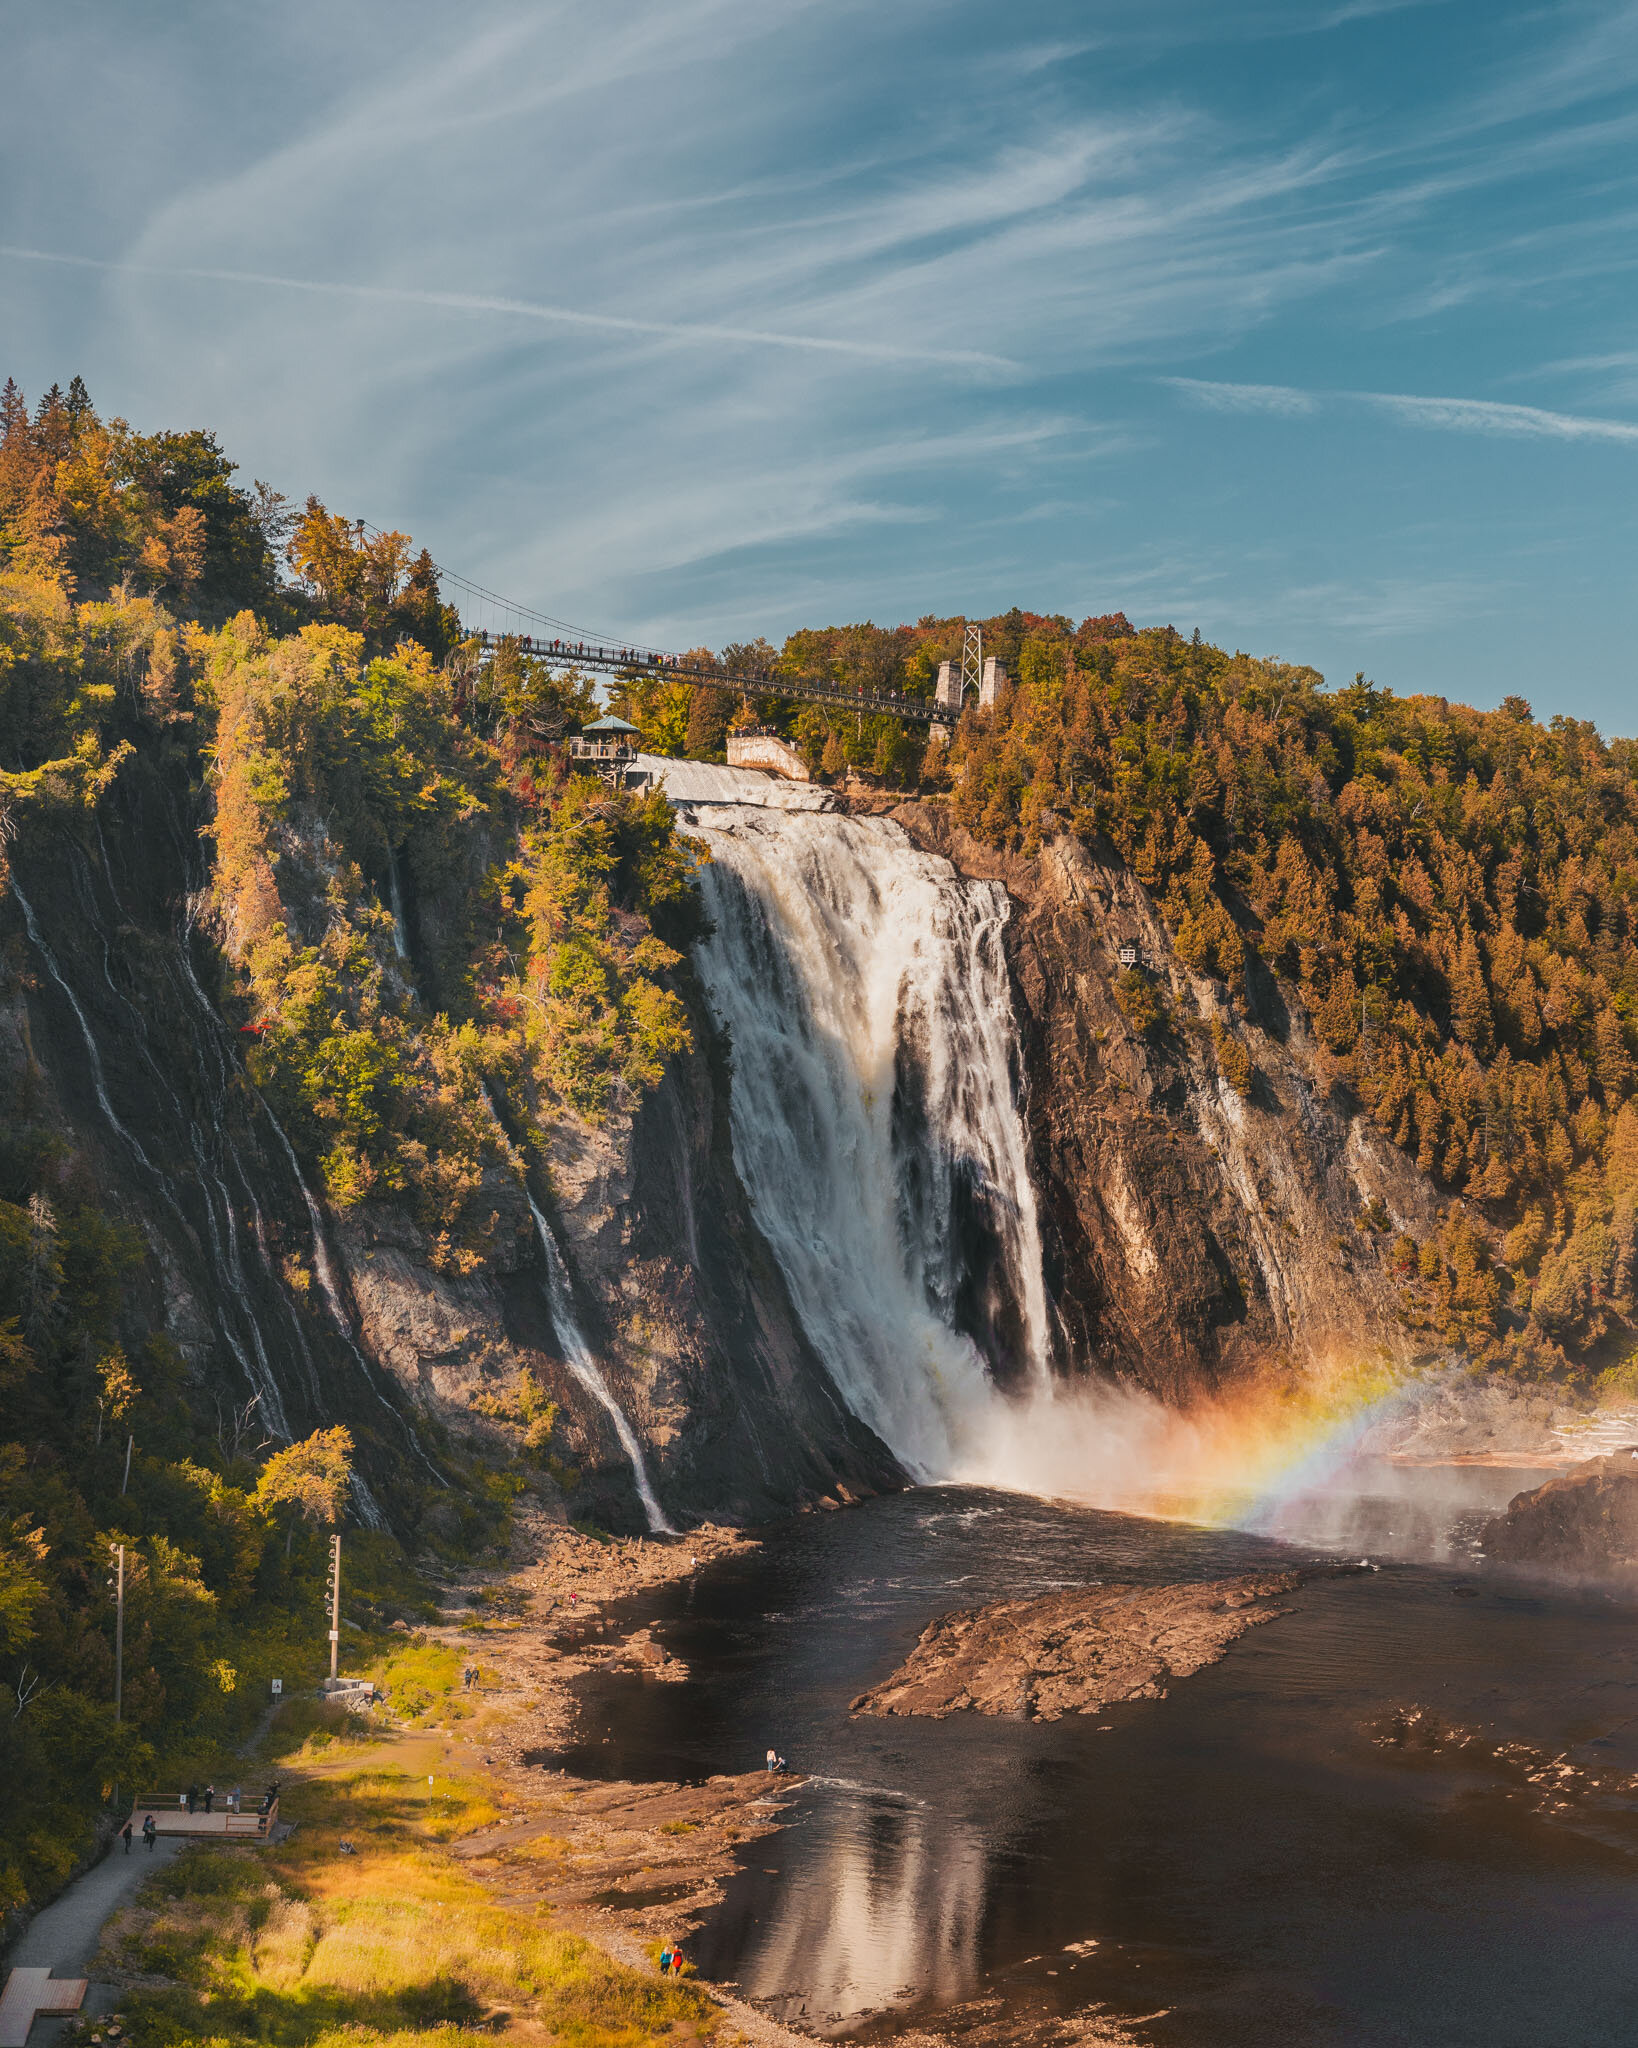 Montmorency Falls in Quebec City // Cruise Review: 11-Day New England & Canada on the Seabourn Quest // #readysetjetset #cruise #luxury #travel #cruising #canada